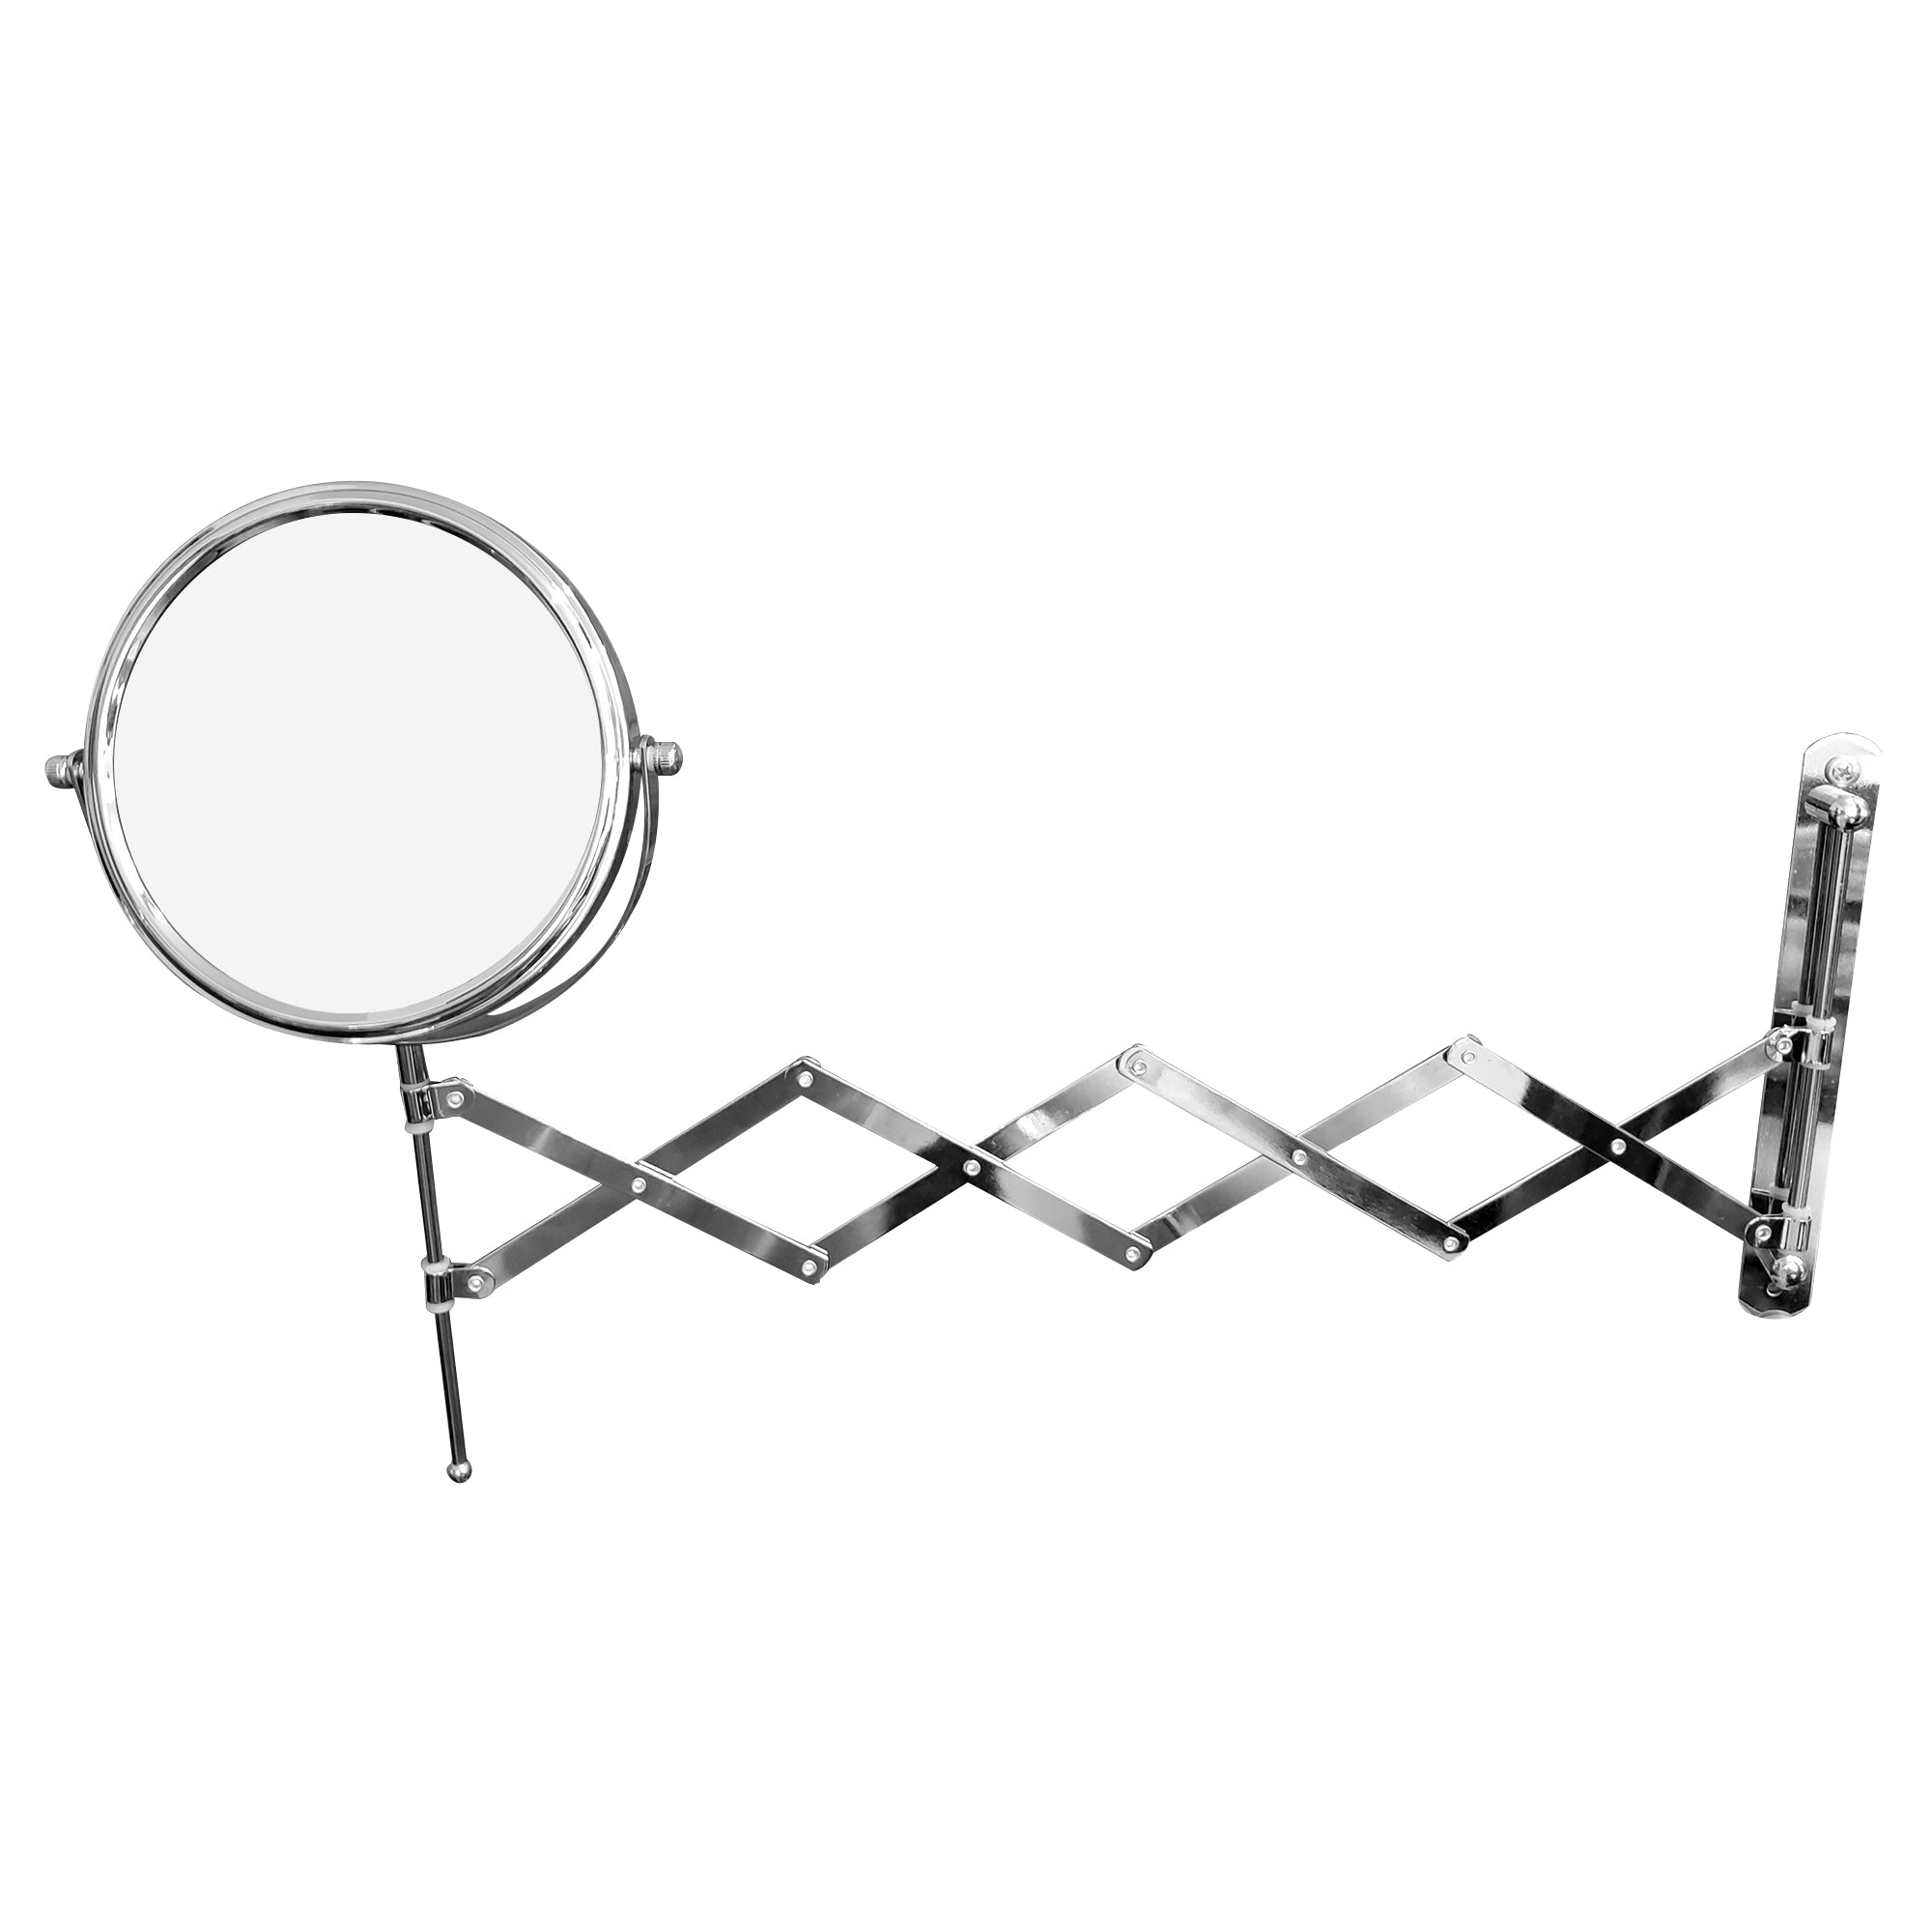 Rucci Magnification Wall Mount Extendable Mirror (M628)